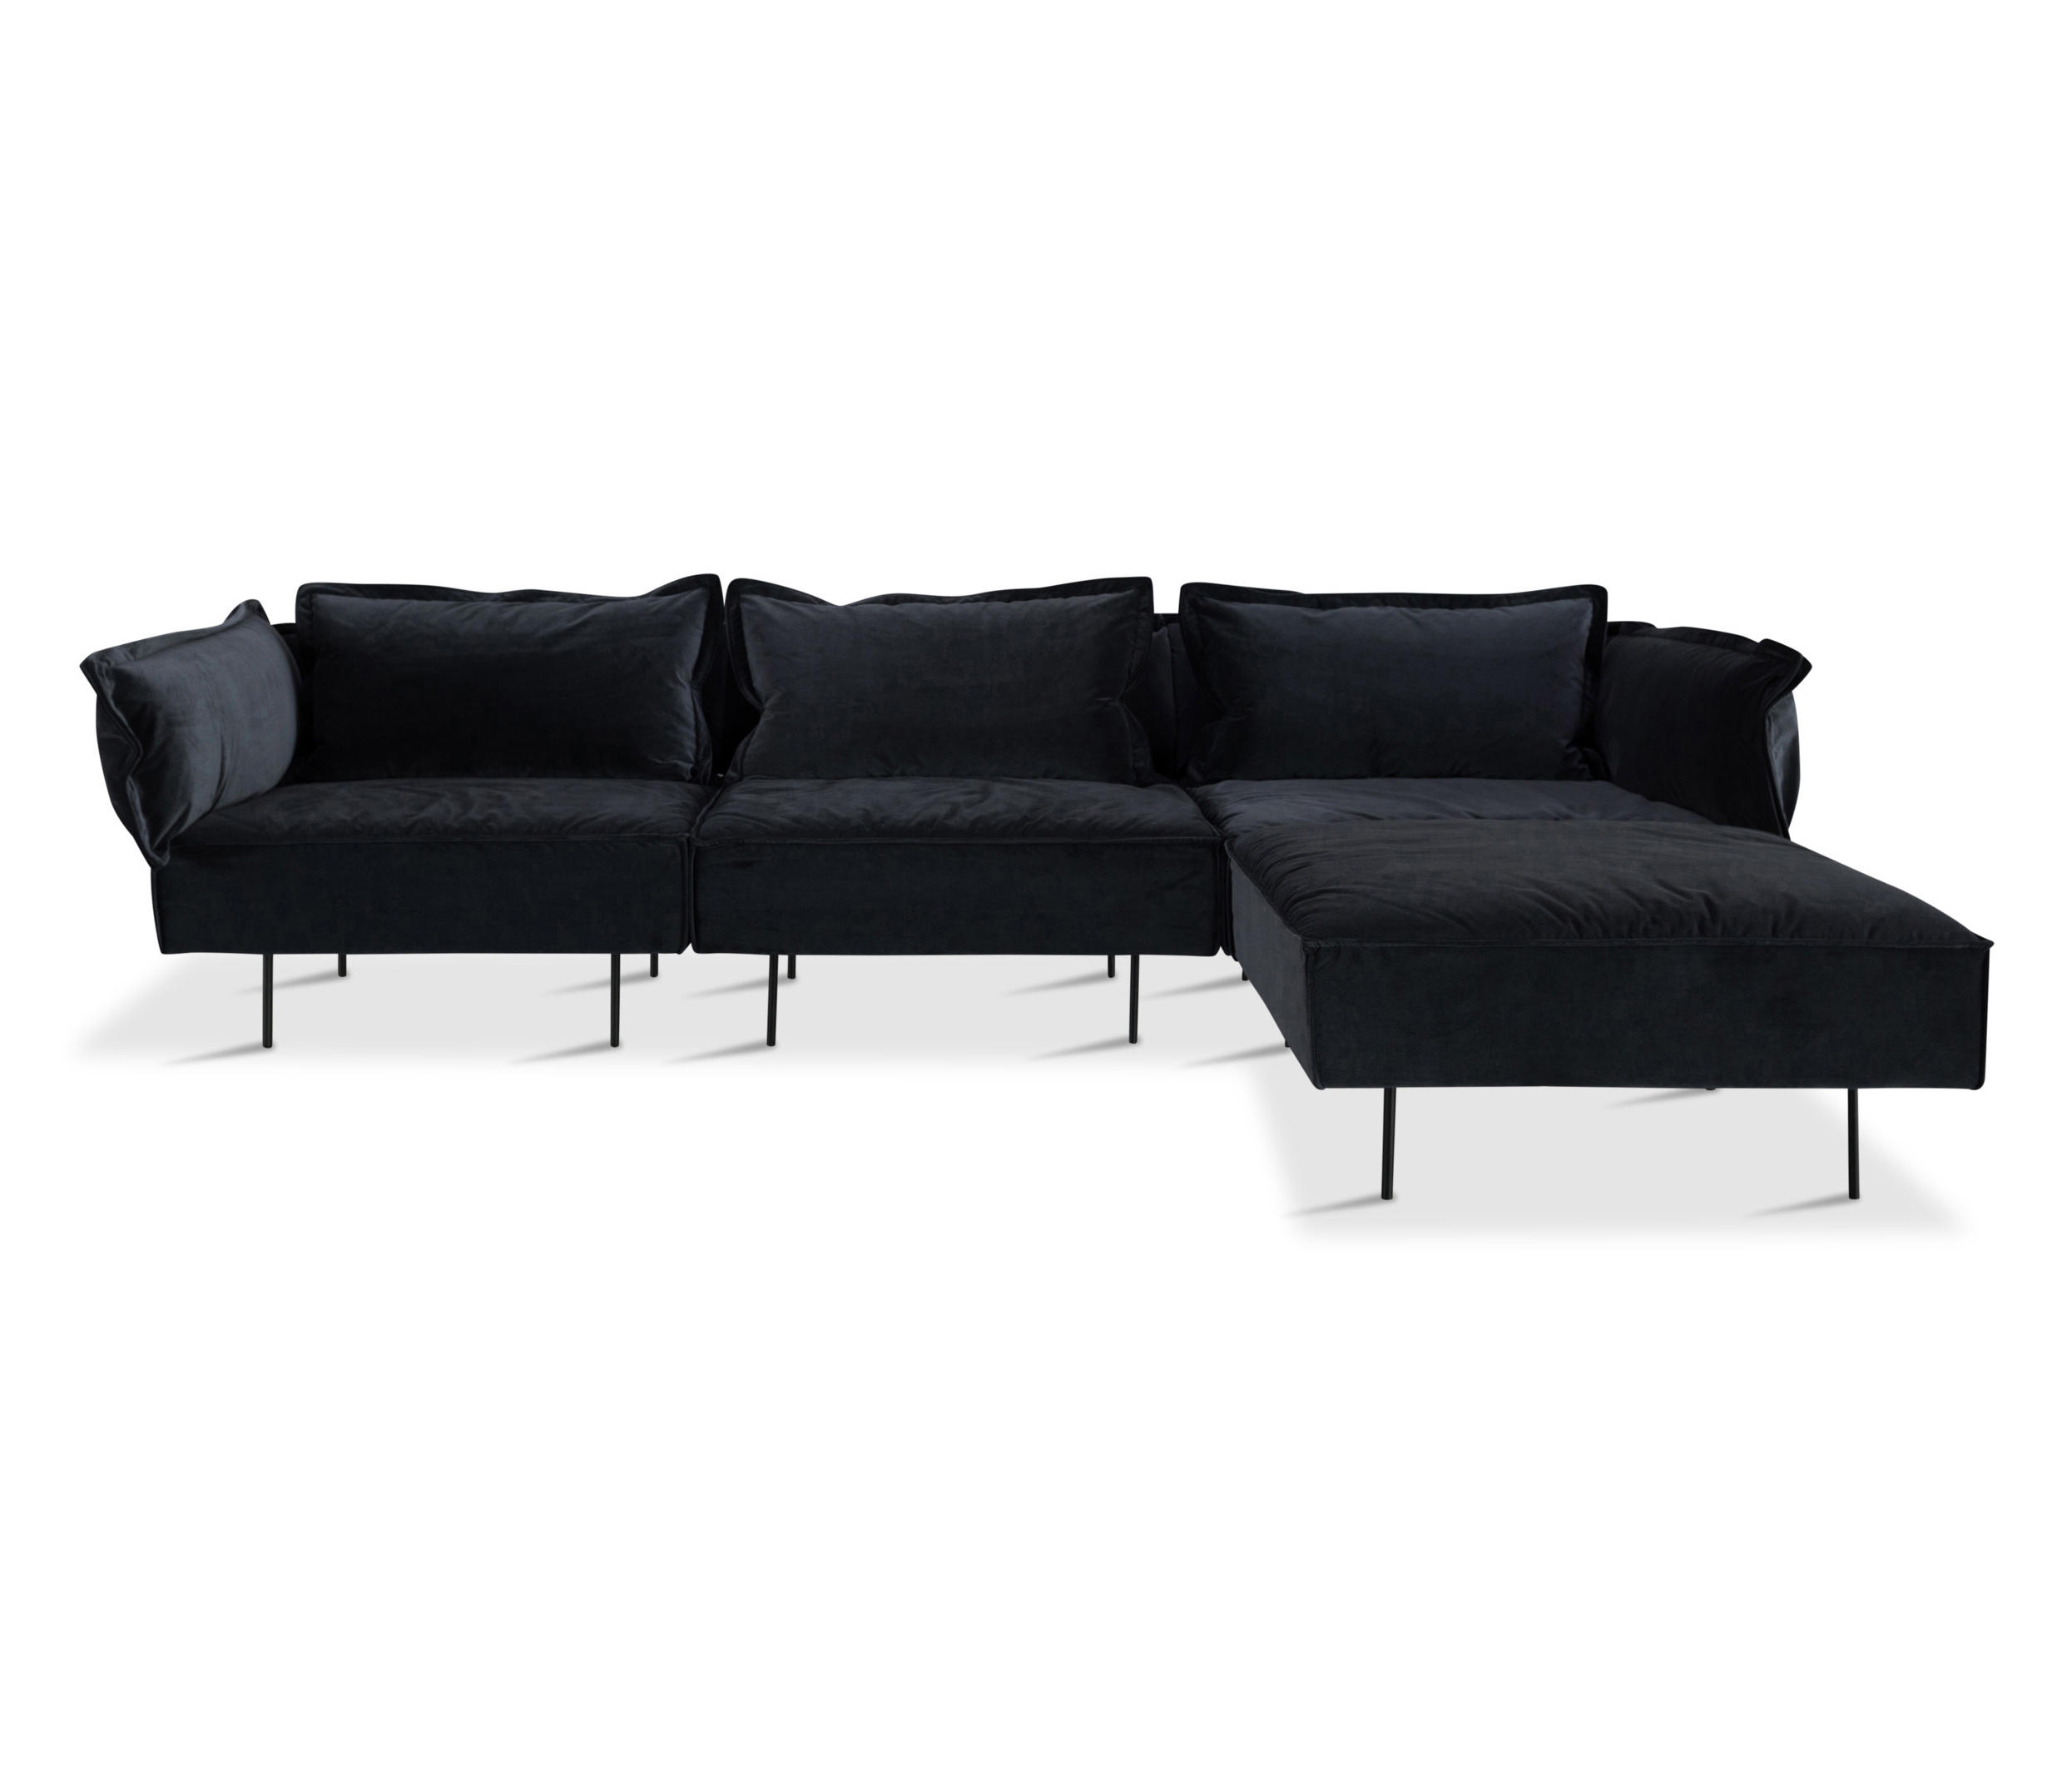 gray sofa with chaise lounge traditional table decorating ideas 3 seat dark grey sofas from handvÄrk